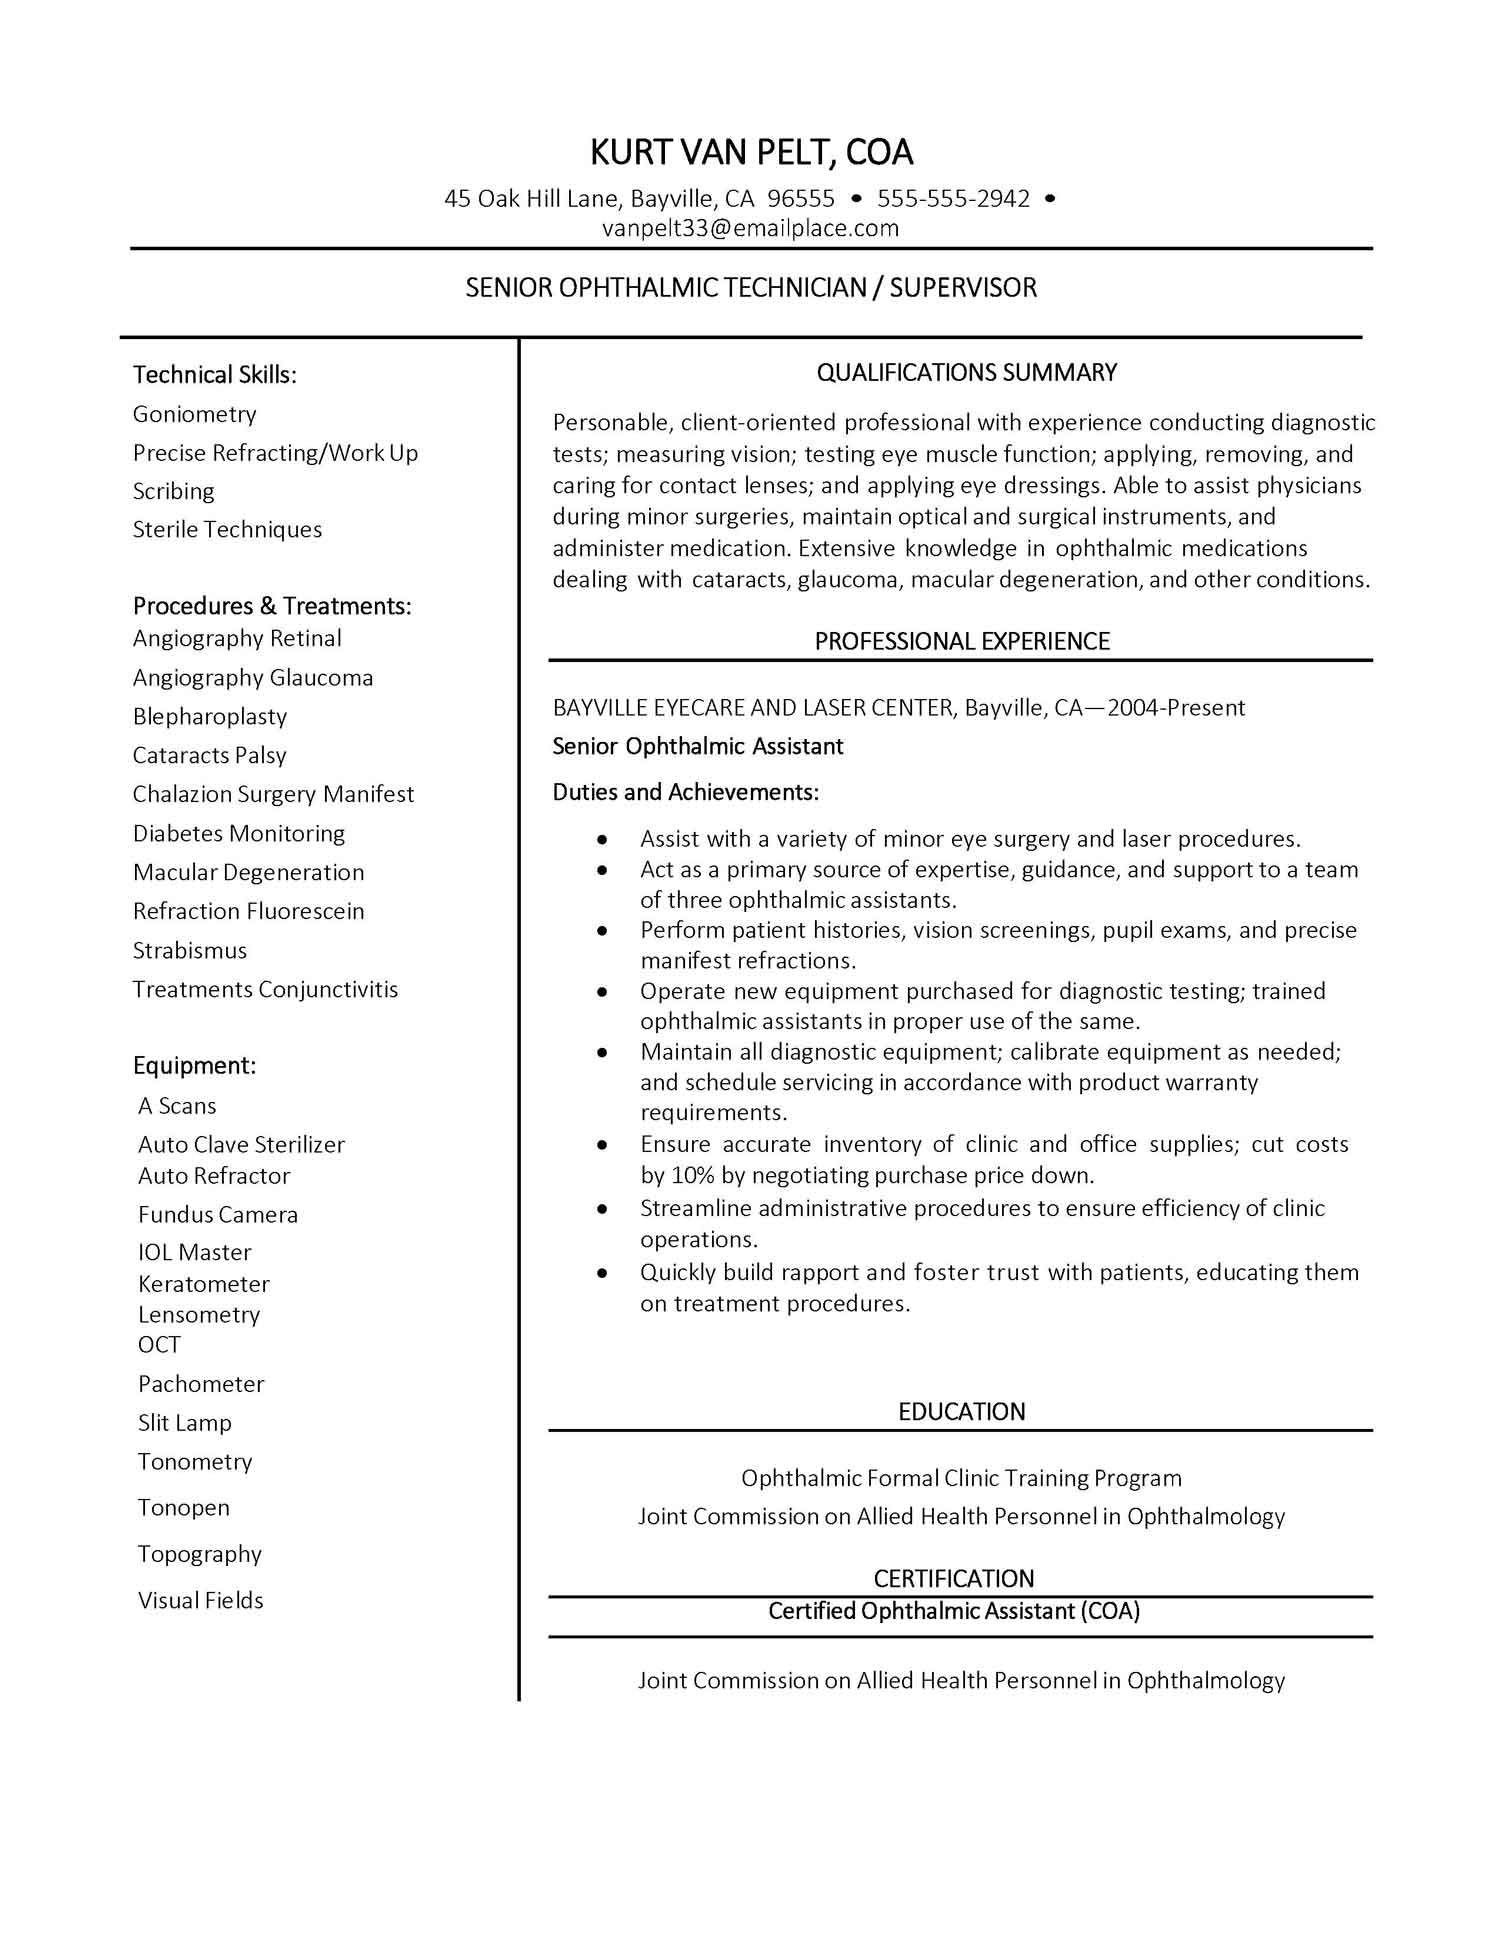 ophthalmic assistant resume certified medical technician sample florist examples free Resume Certified Ophthalmic Assistant Resume